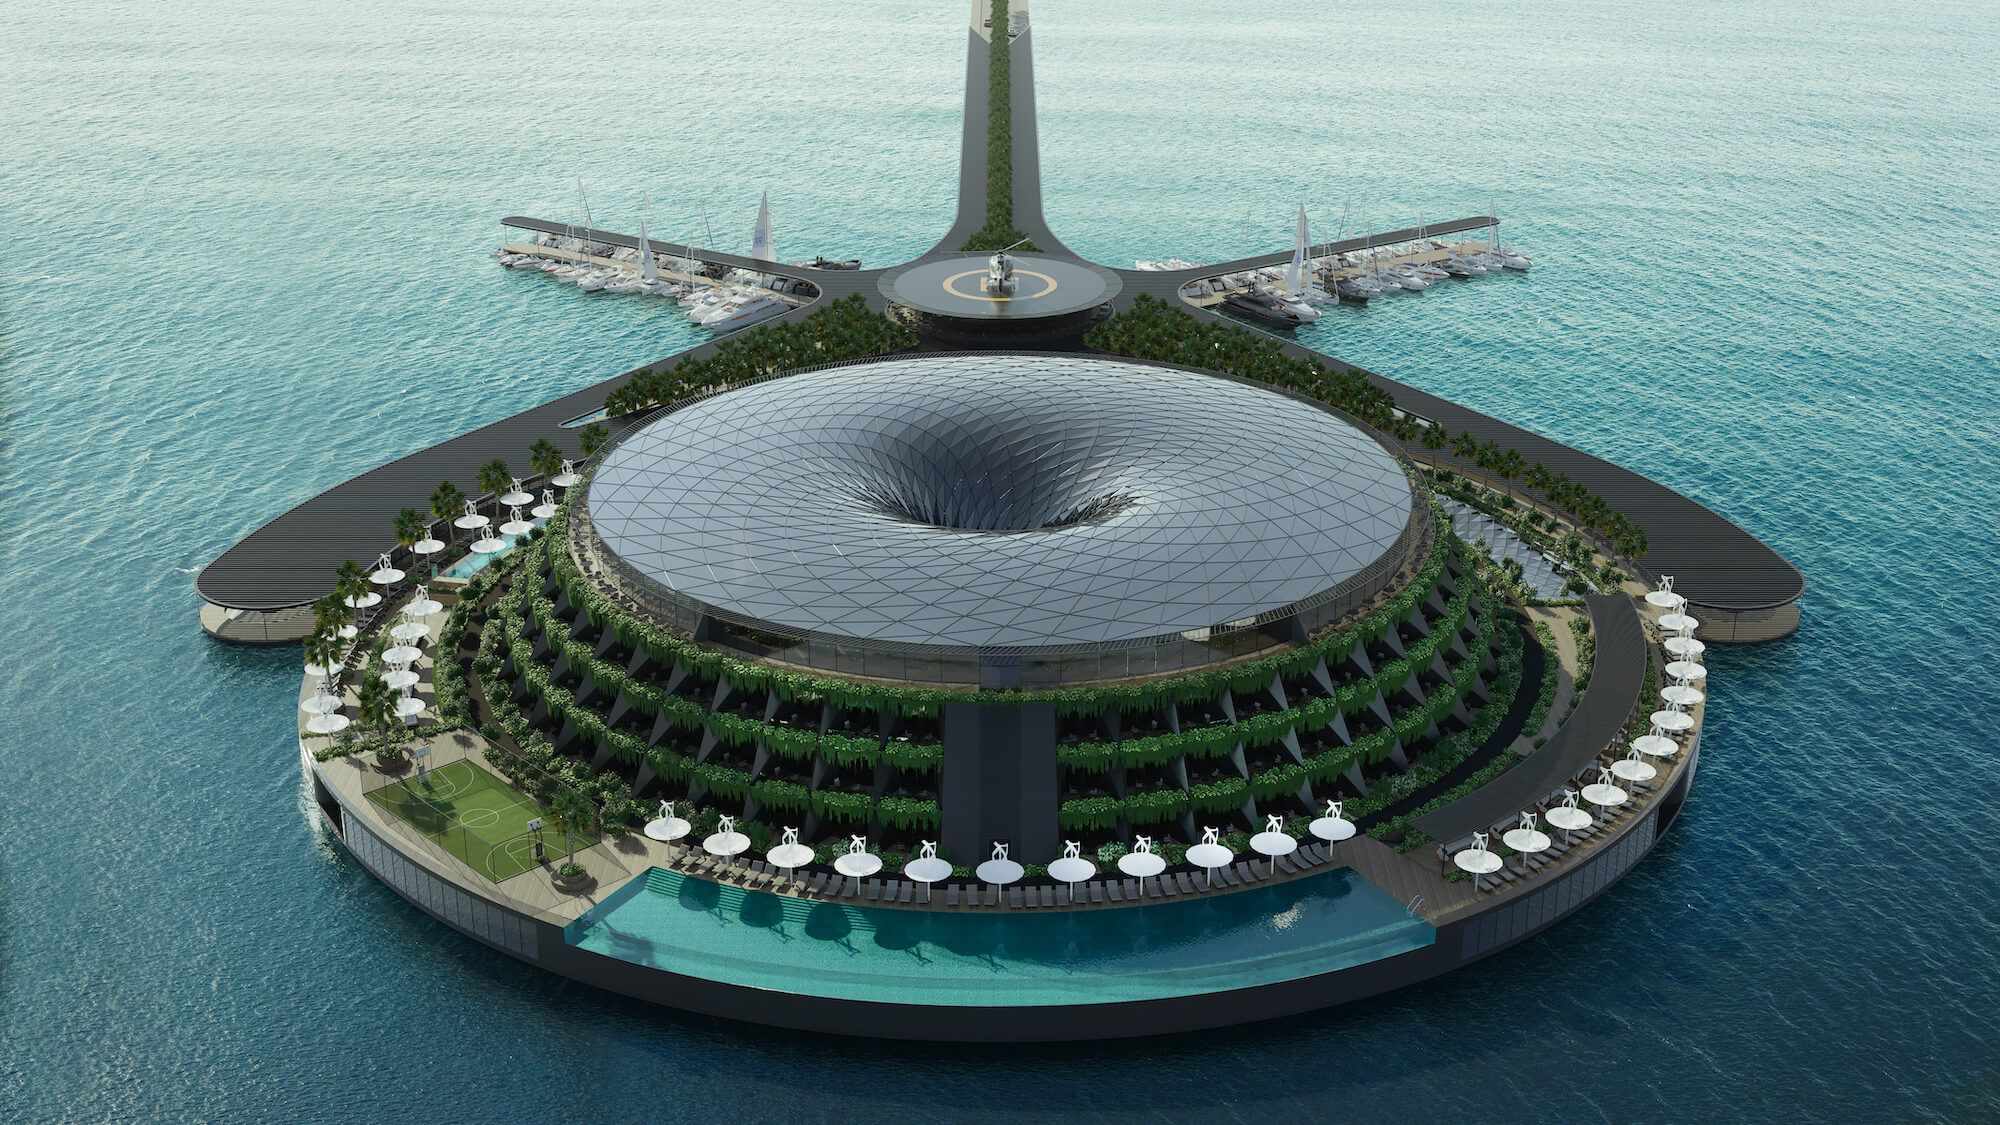 Qatar Plans To Build A Floating Eco-Luxury Hotel As Soon As 2025